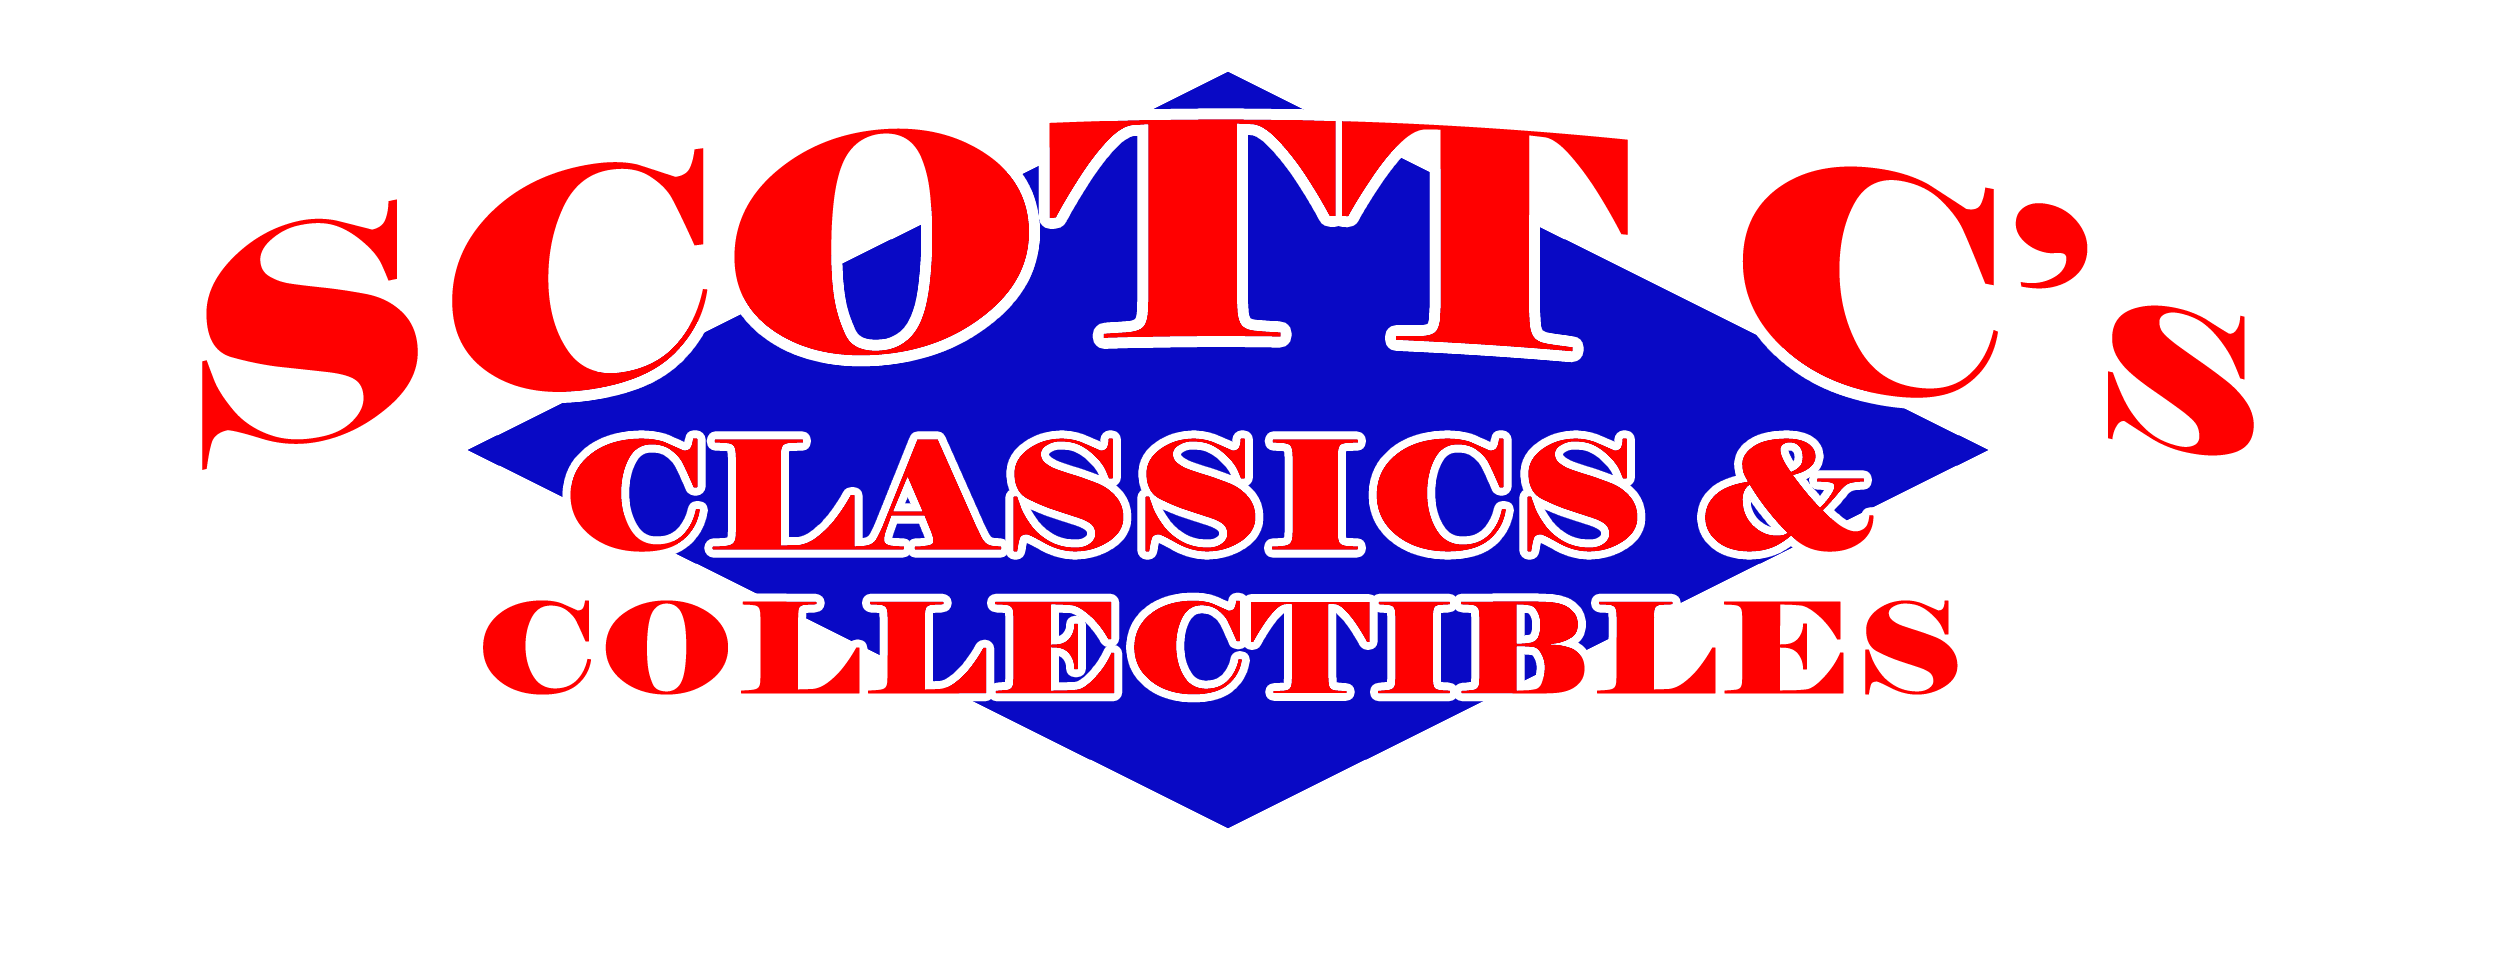 Scott C's Classics & Collectibles logo